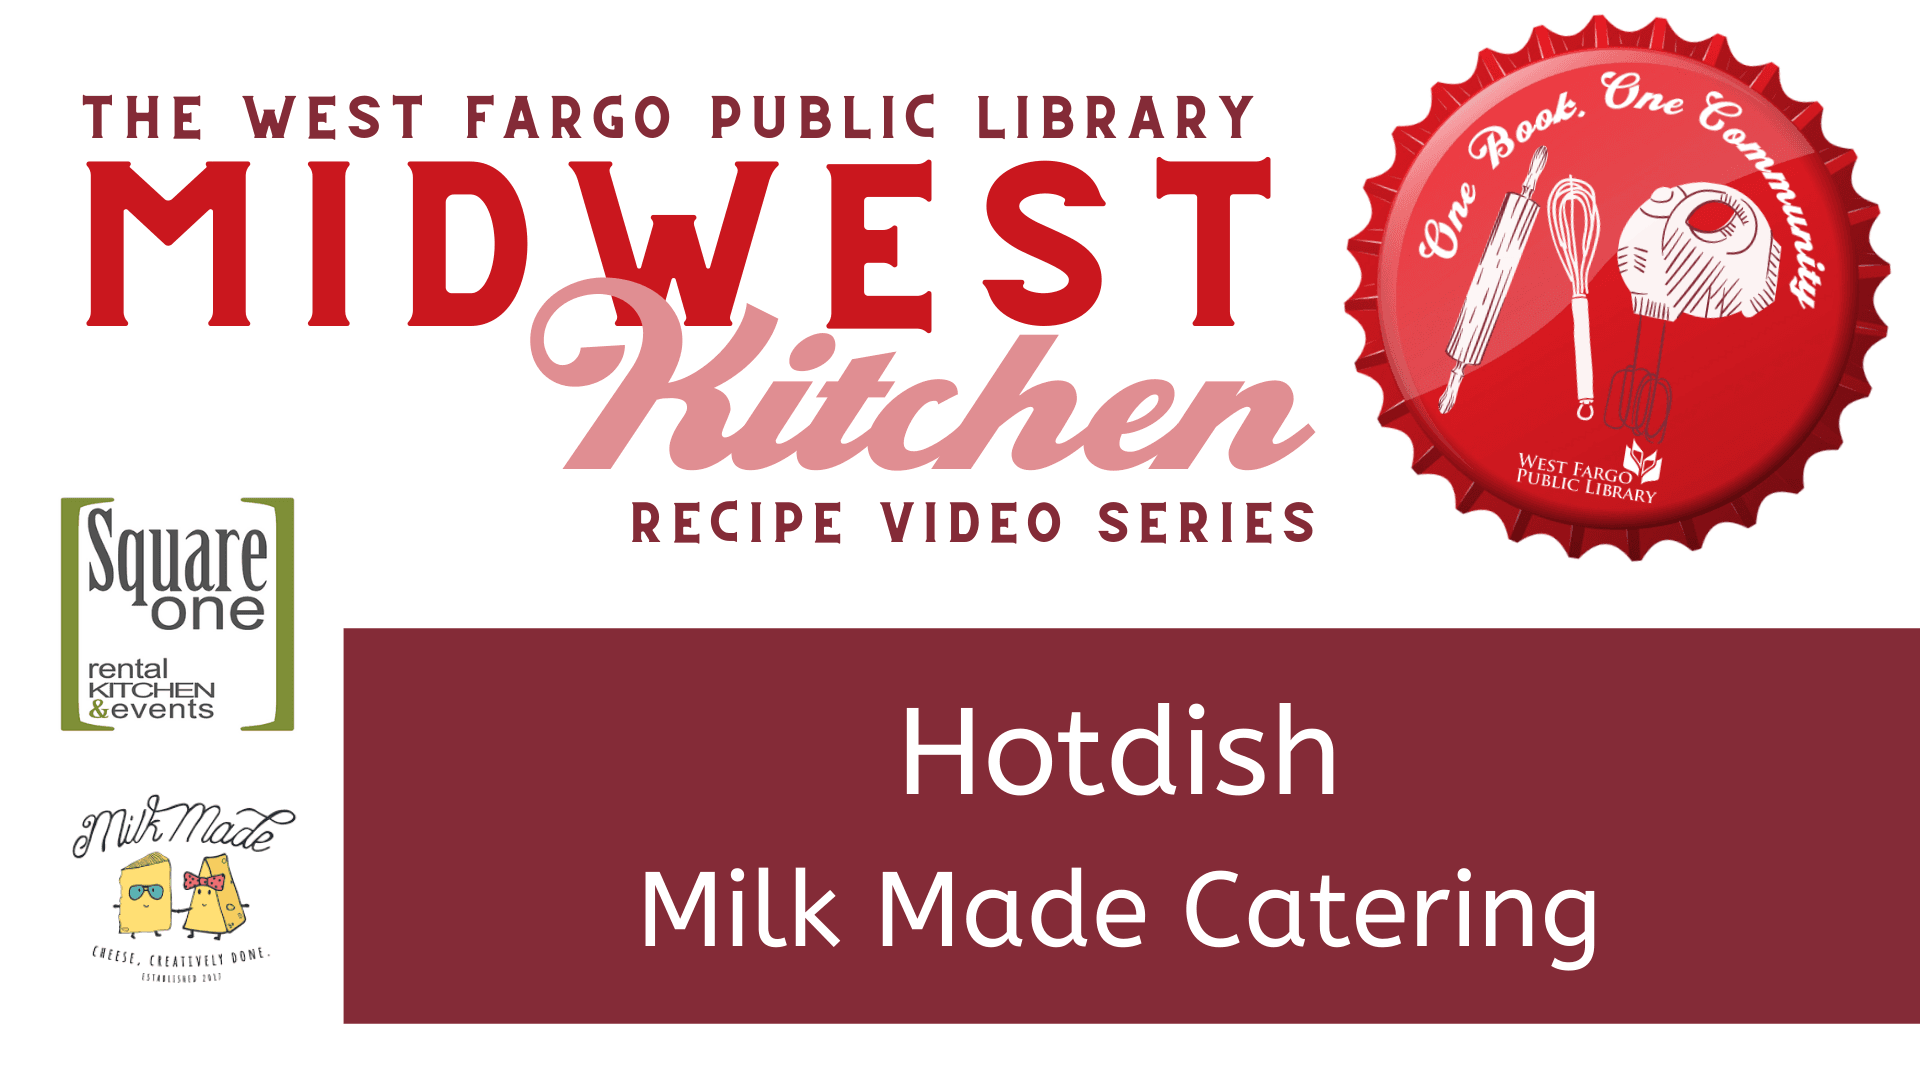 Hotdish Milk Made Catering Midwest Kitchen Graphic